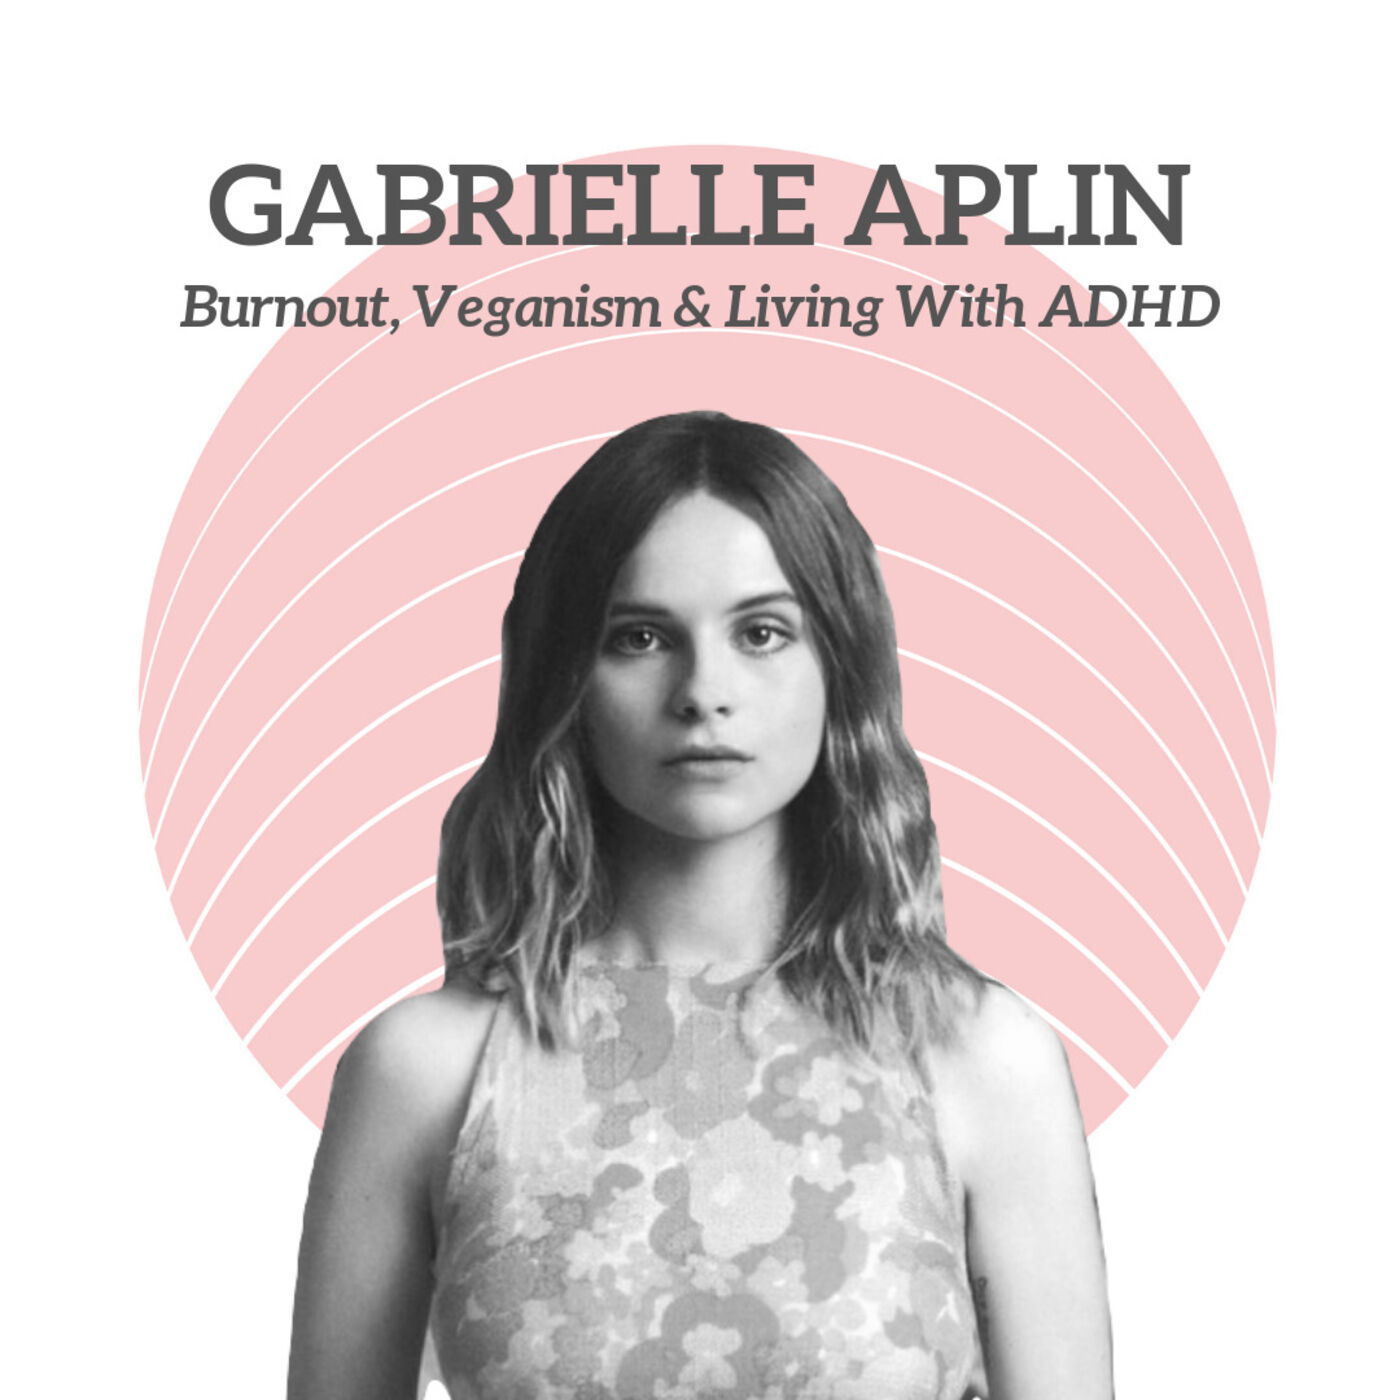 Gabrielle Aplin - Burnout, Veganism & Living With ADHD